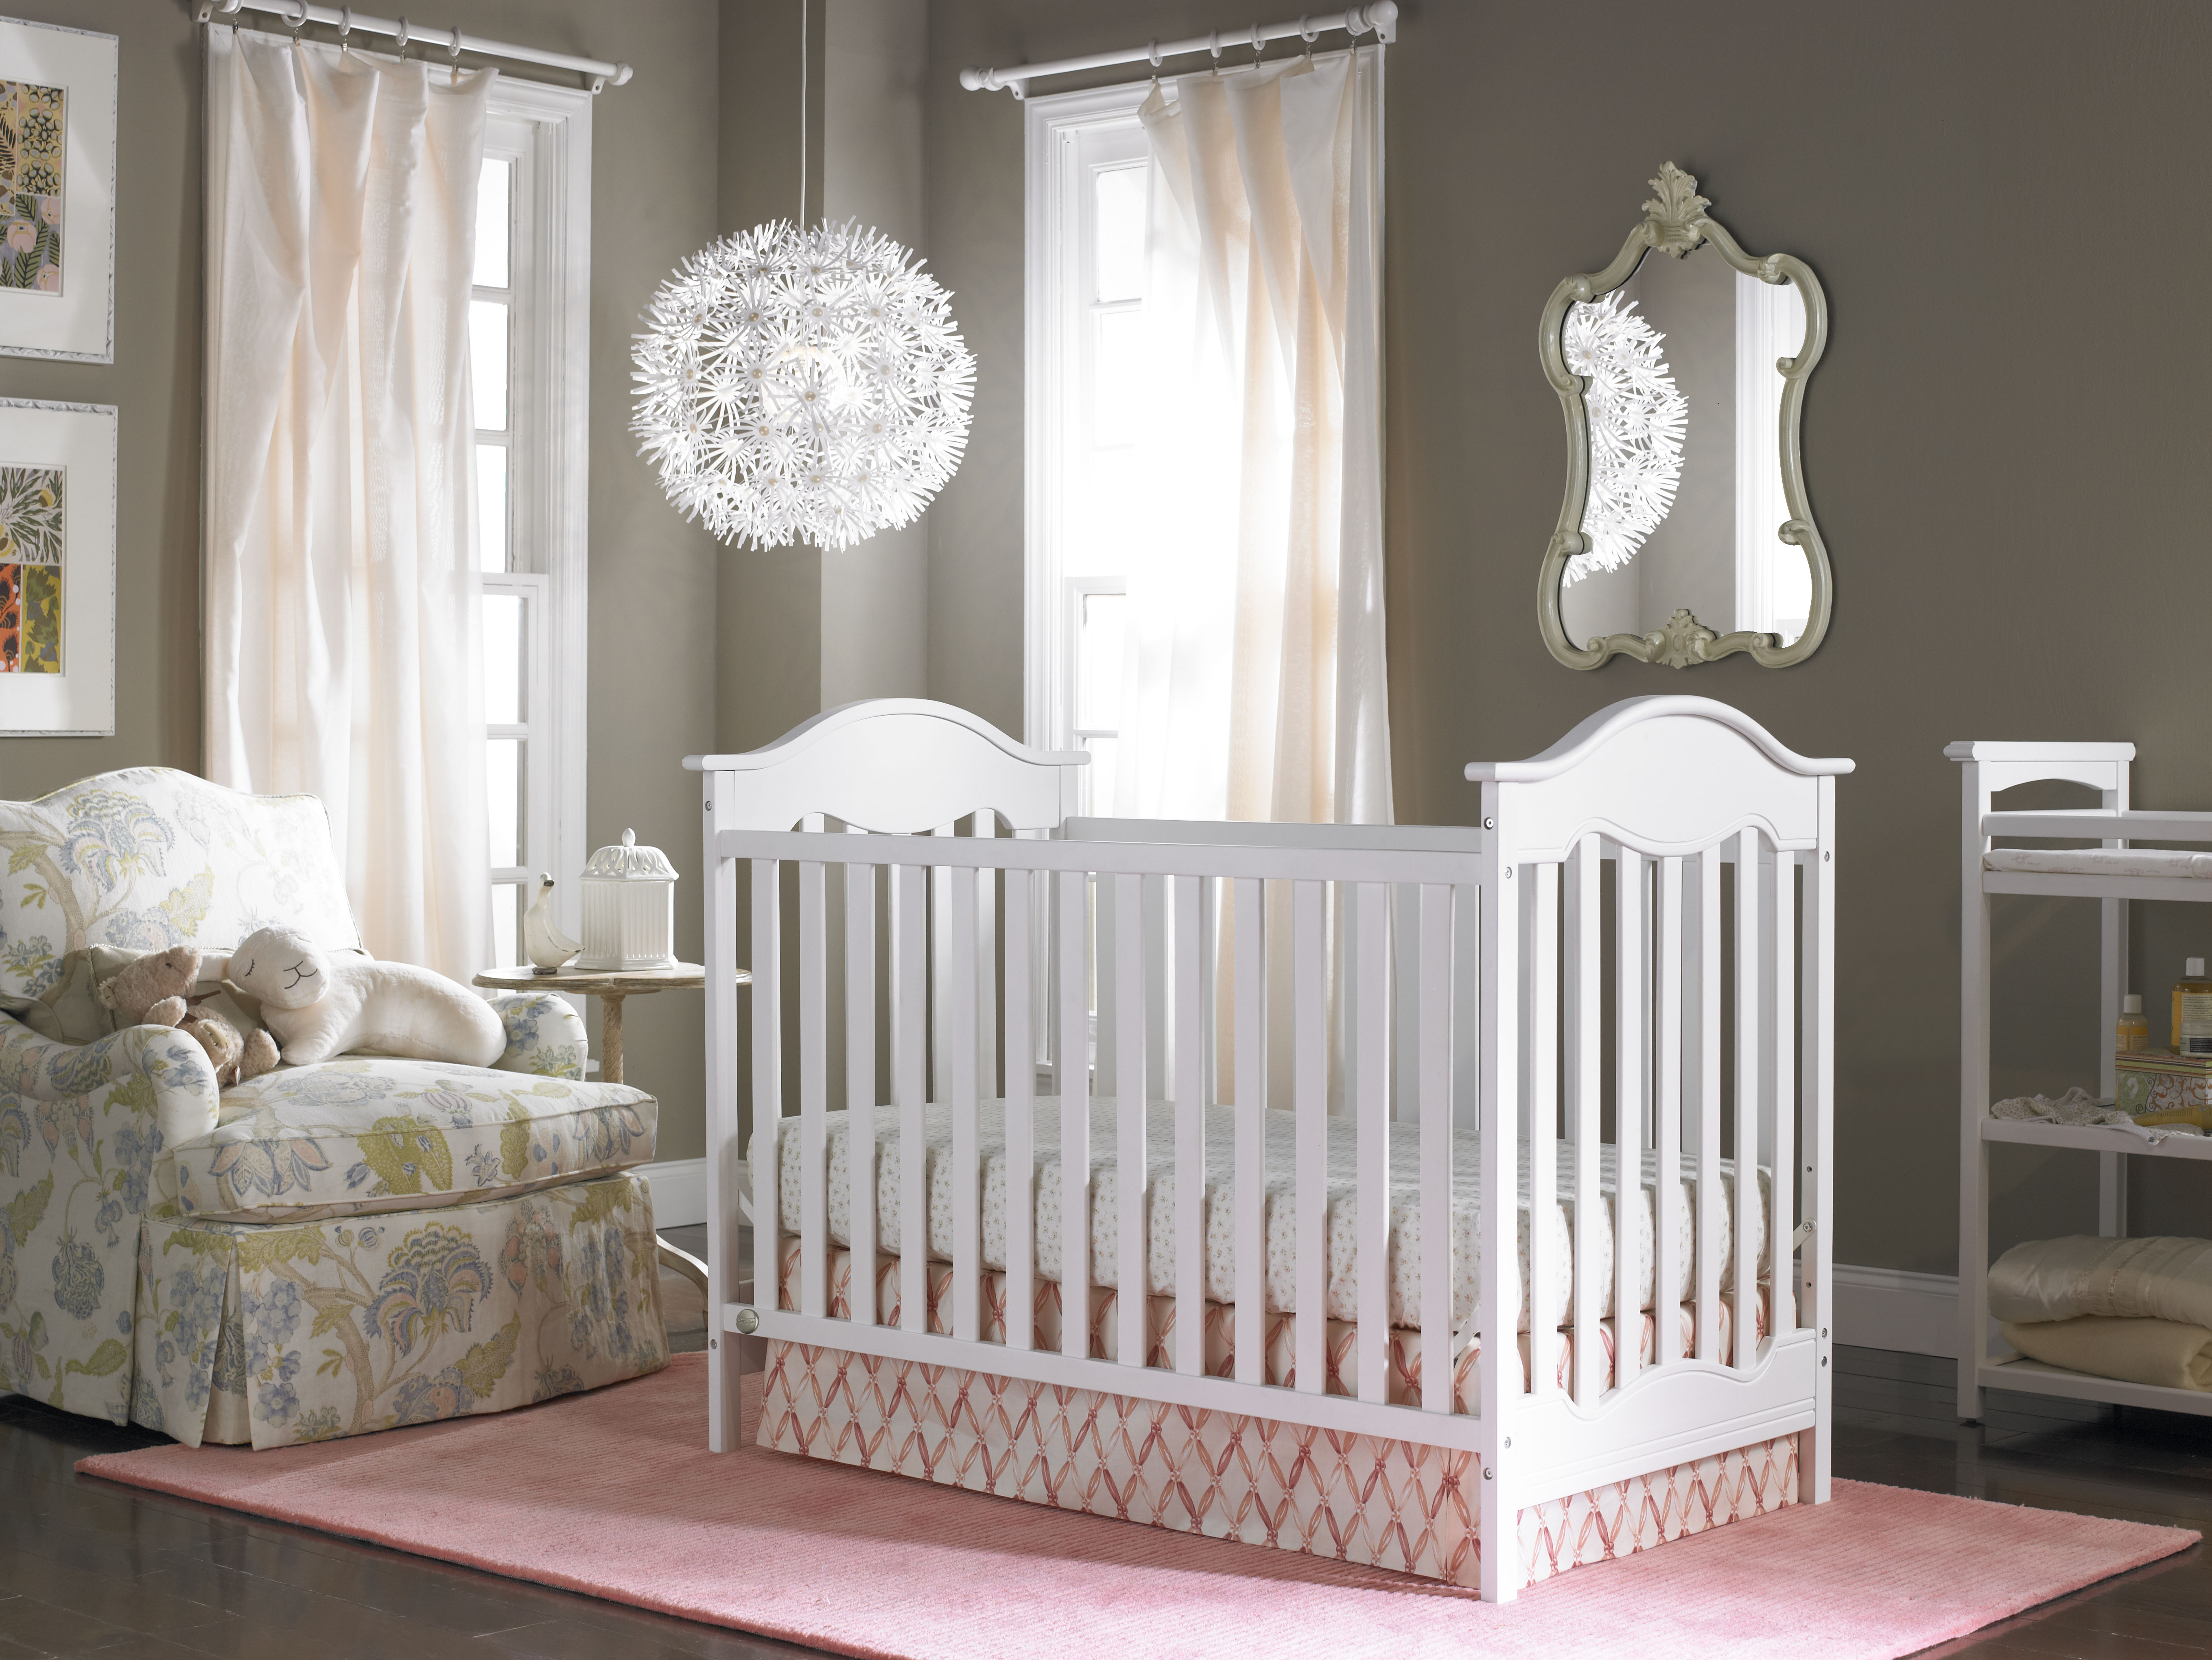 Incredible Design Rustic Nursery